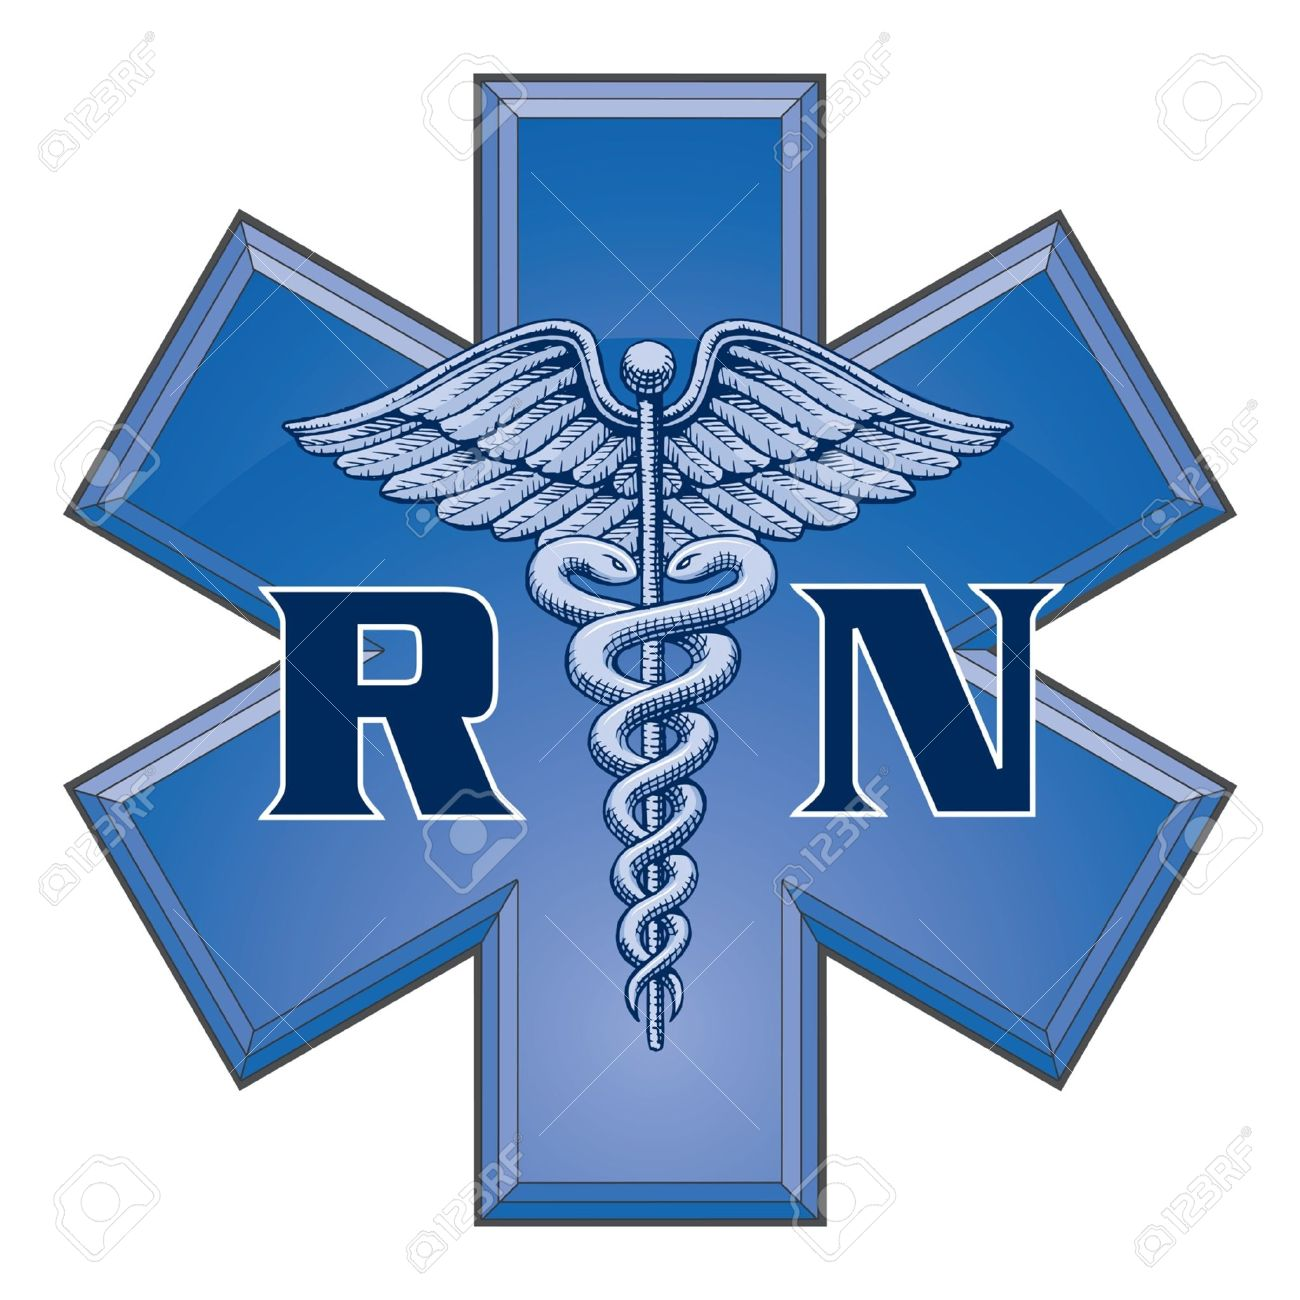 Registered Nurse Star of Life Nursing Symbol Design